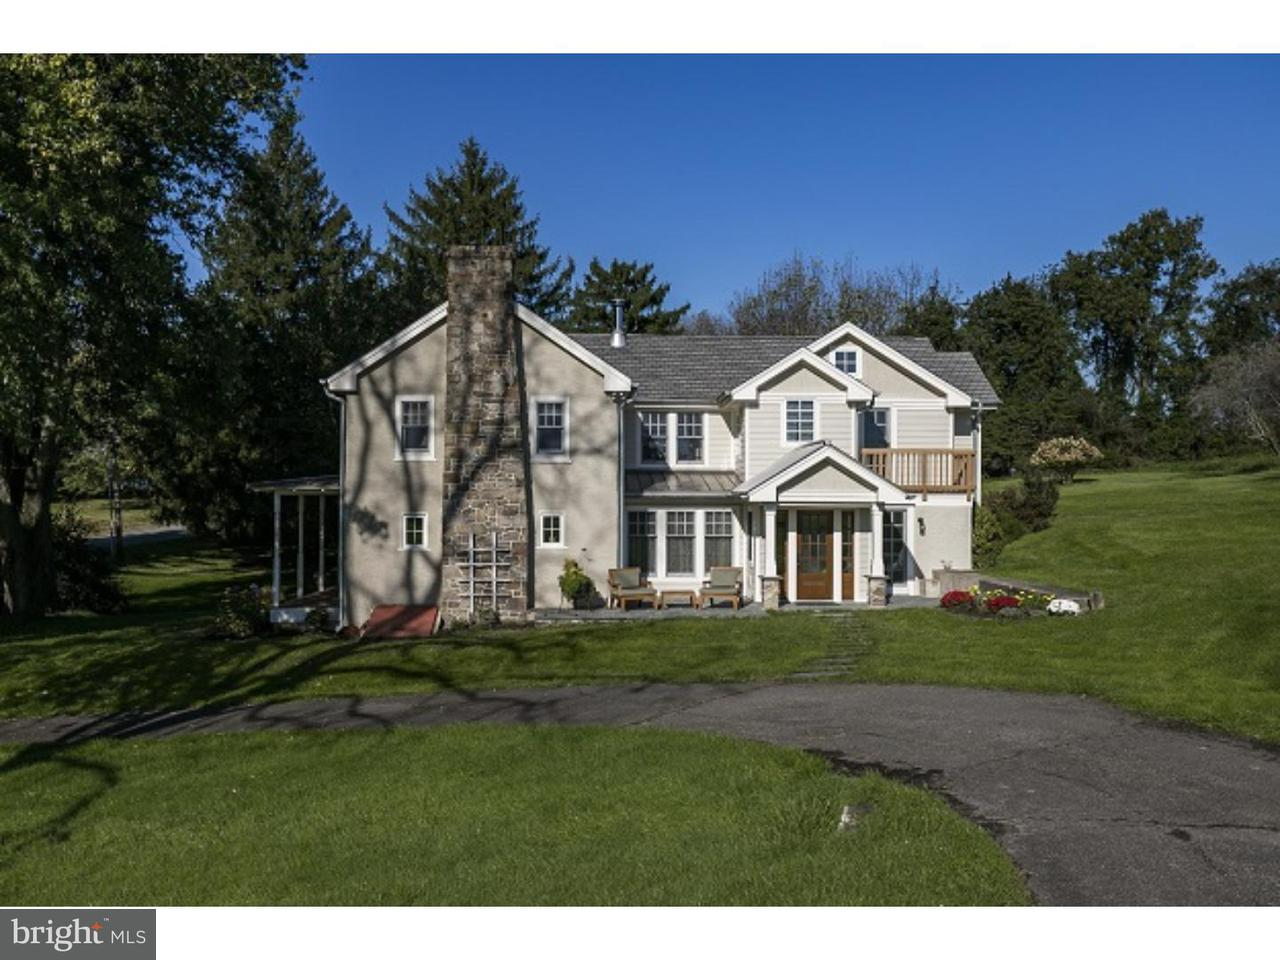 Single Family Home for Sale at 147 GLENDALE Road Boyertown, Pennsylvania 19512 United States